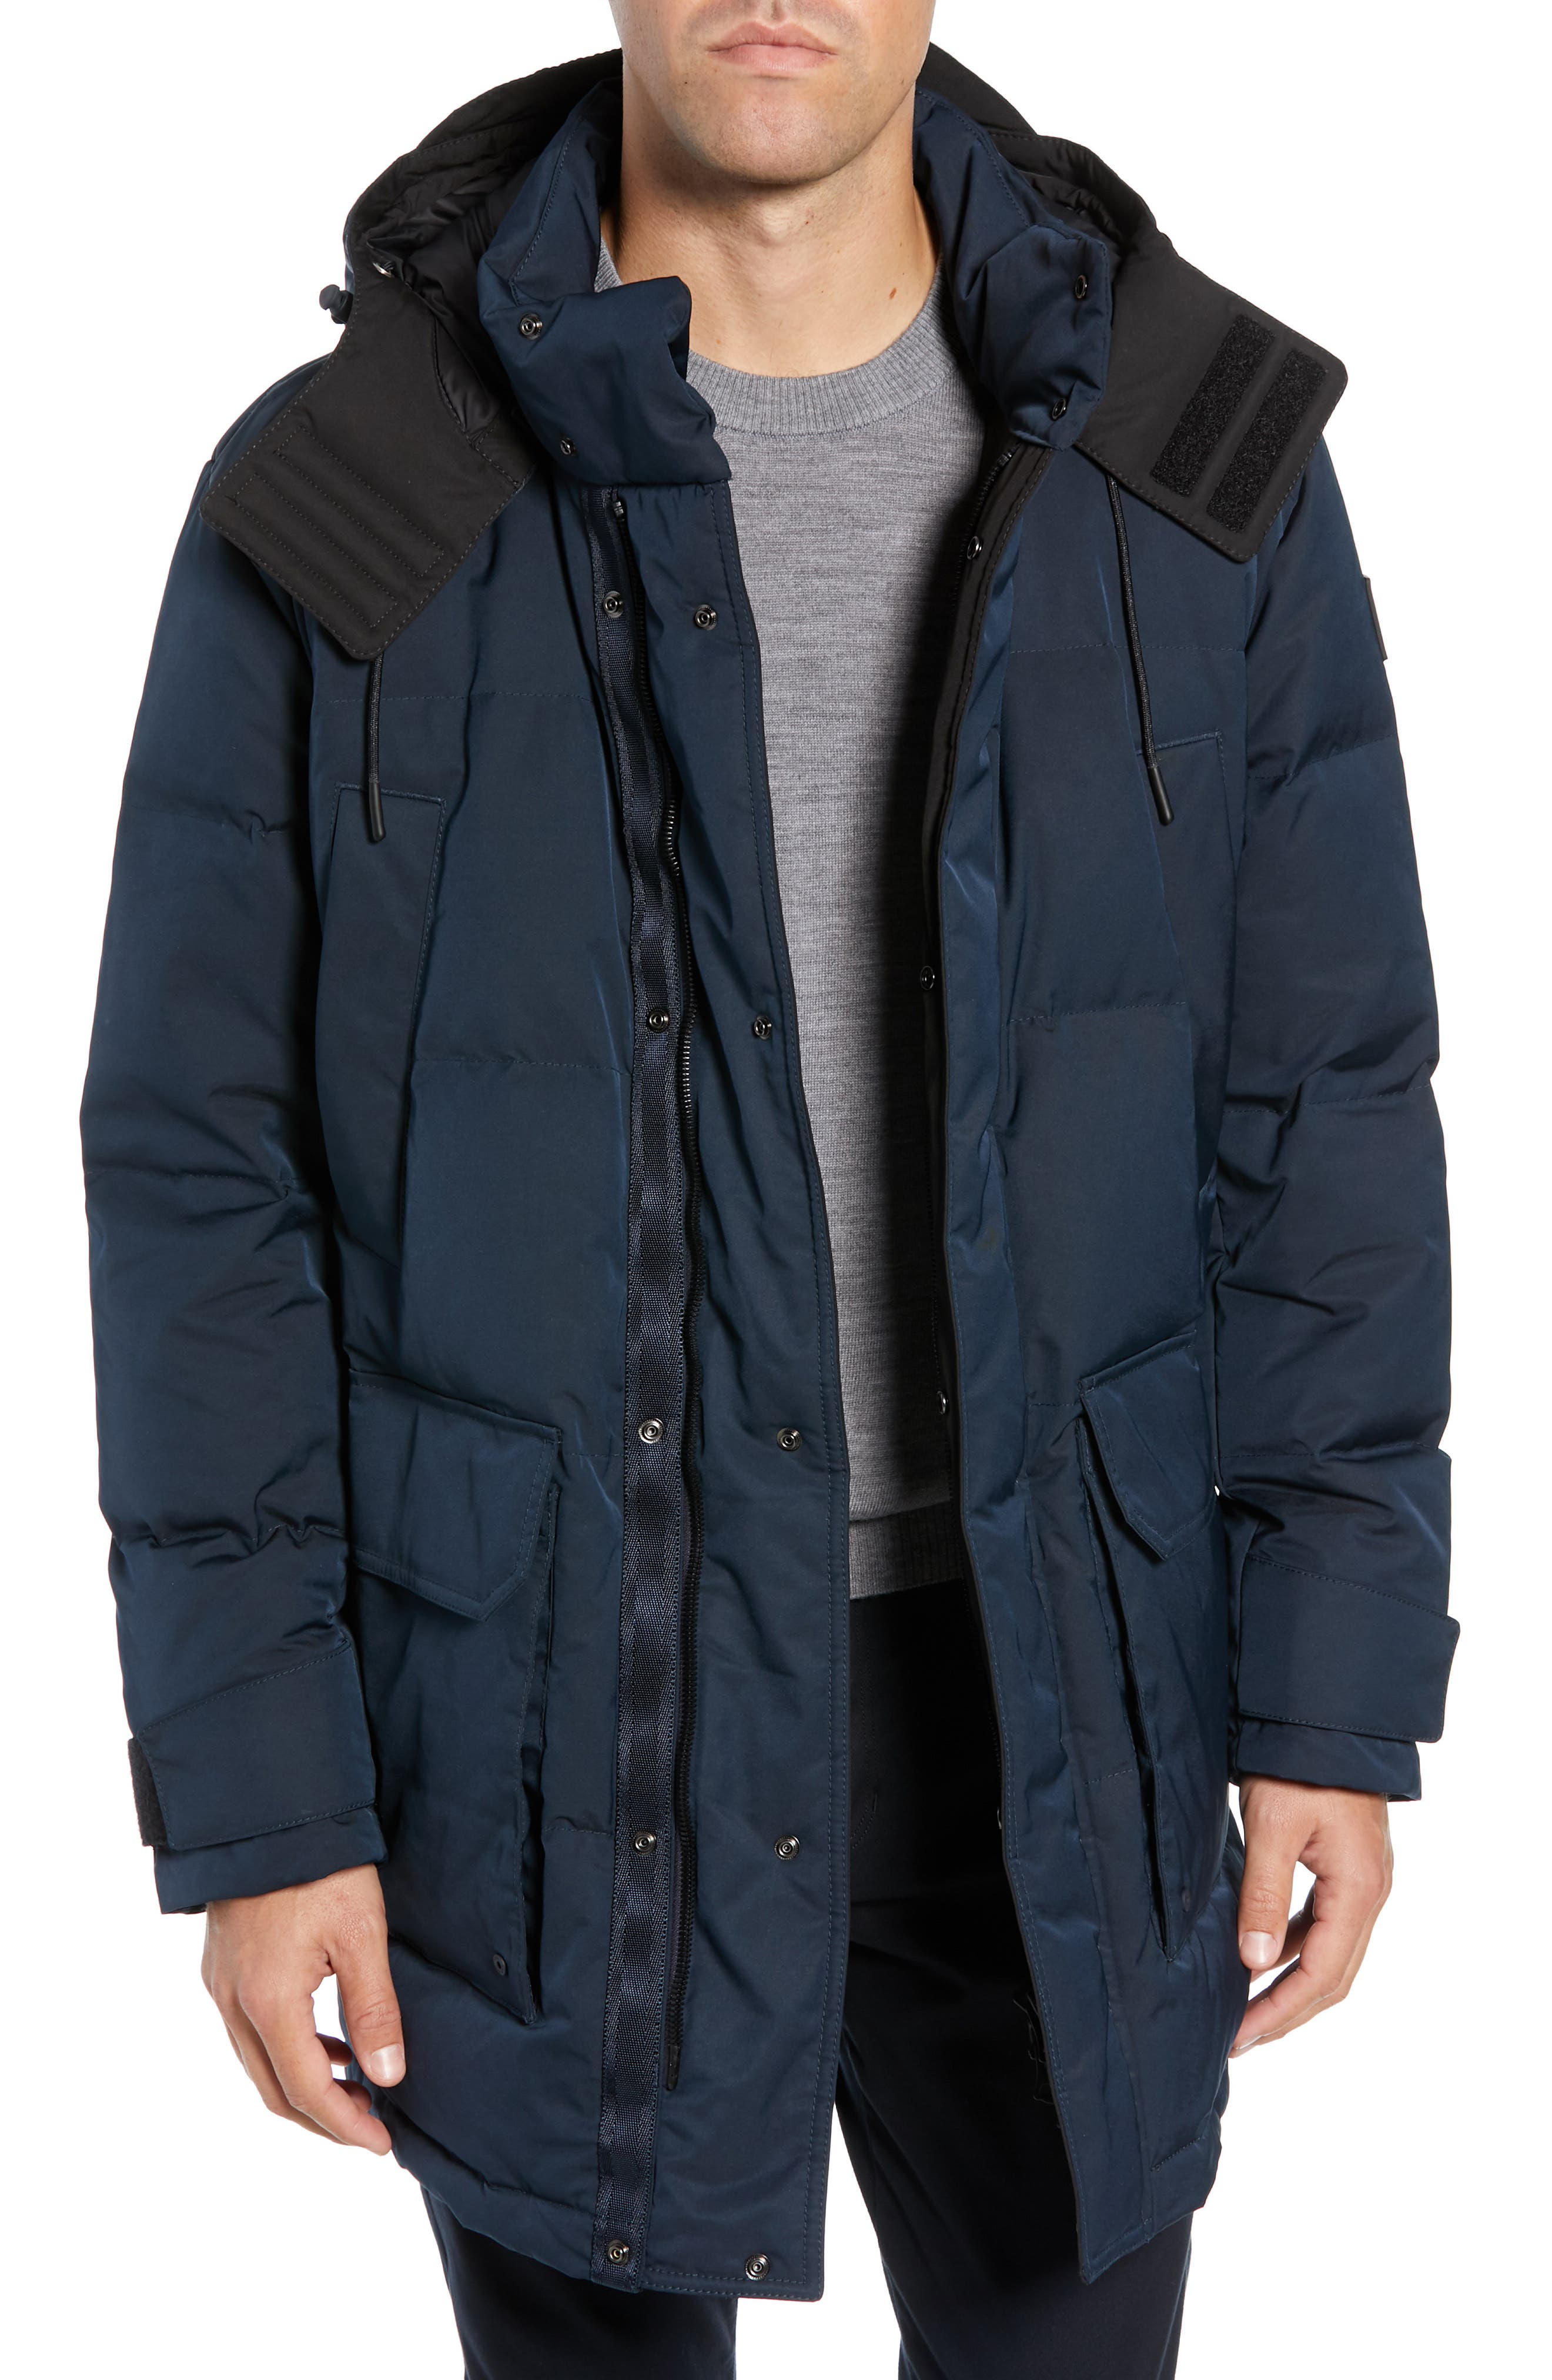 Onek Regular Fit Twill Puffer Jacket,                         Main,                         color, BLUE